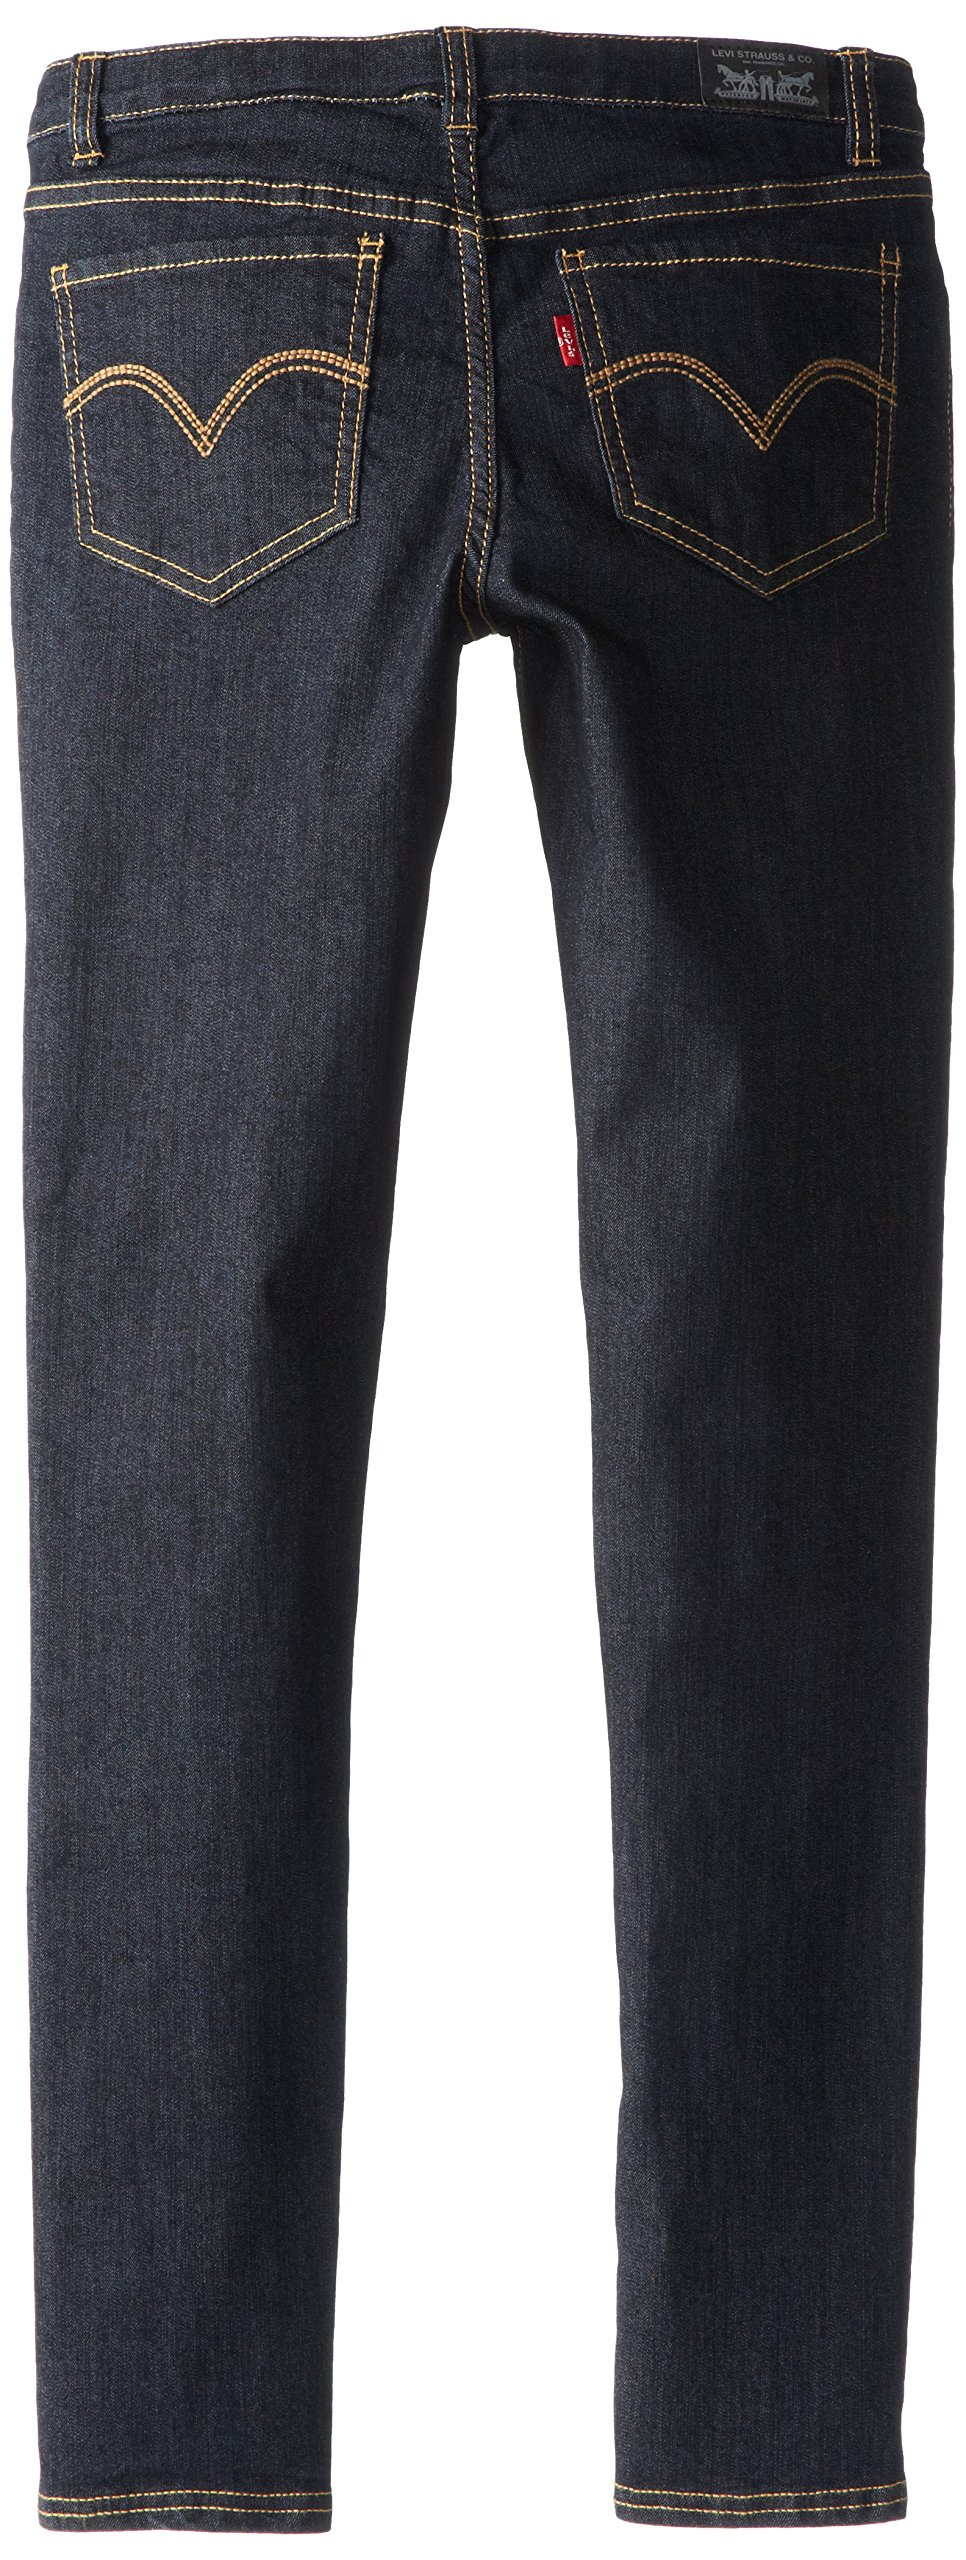 Levi's Girls 7-16 Regs 2702 Denim Legging, Night Out, 16 by Levi's (Image #2)